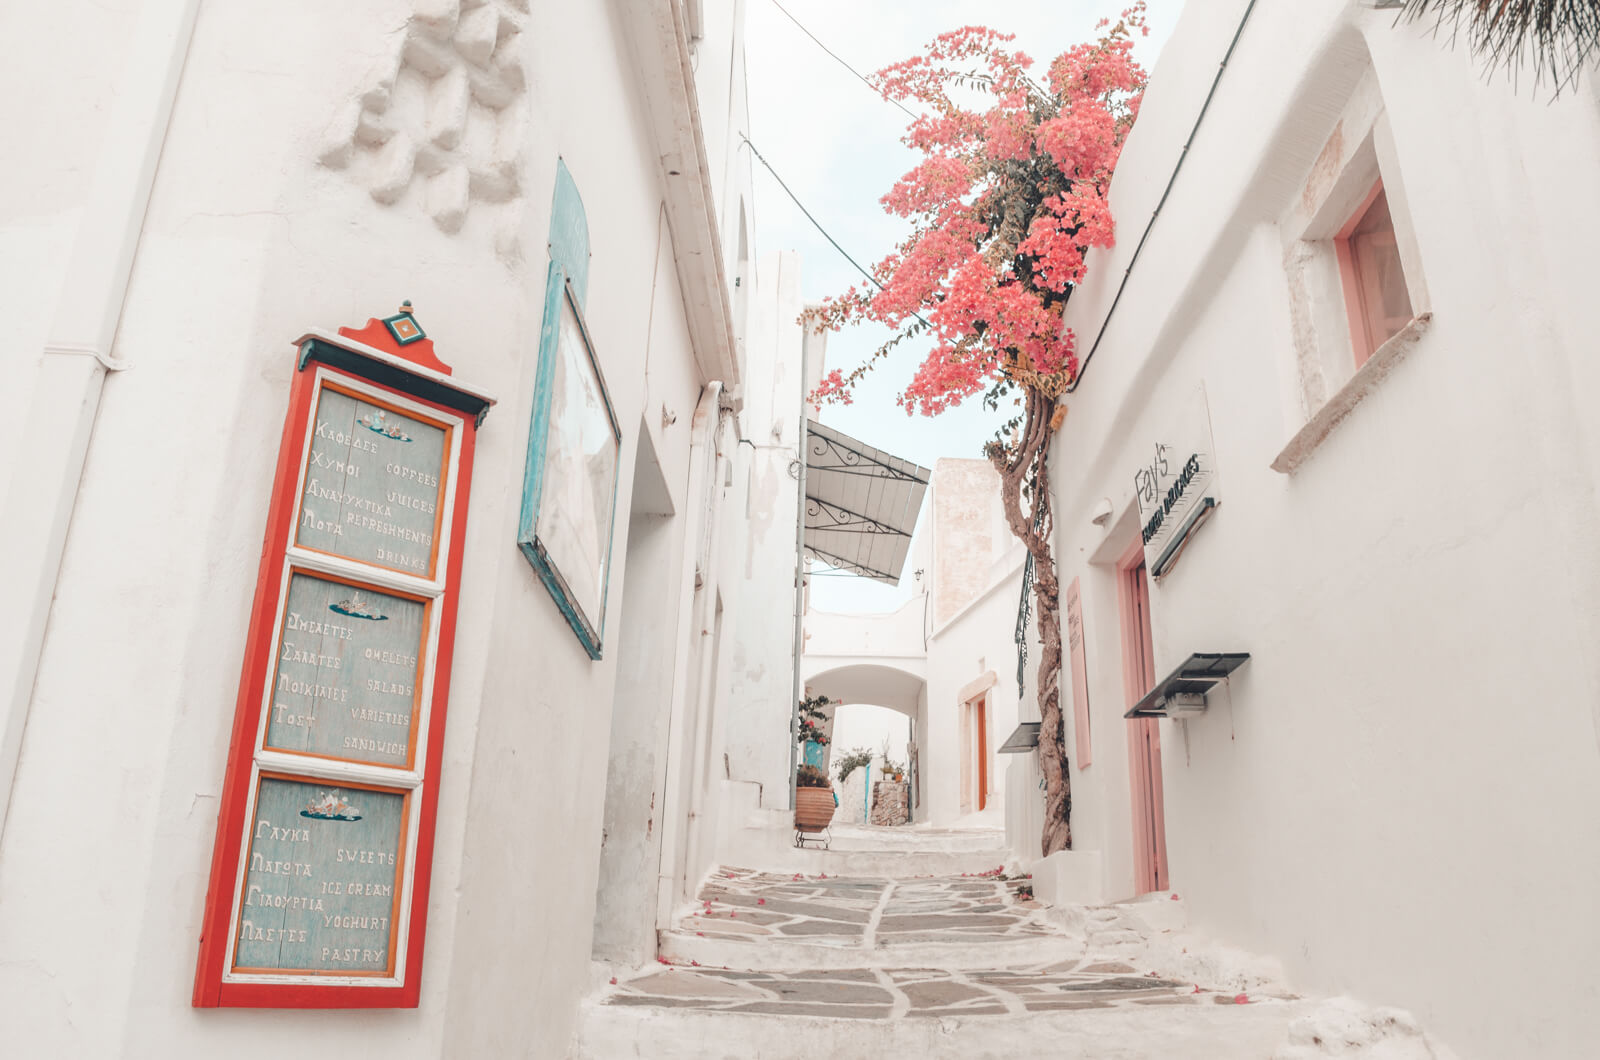 paros-cyclades-greece-la-vie-en-blog-all-rights-reserved-148